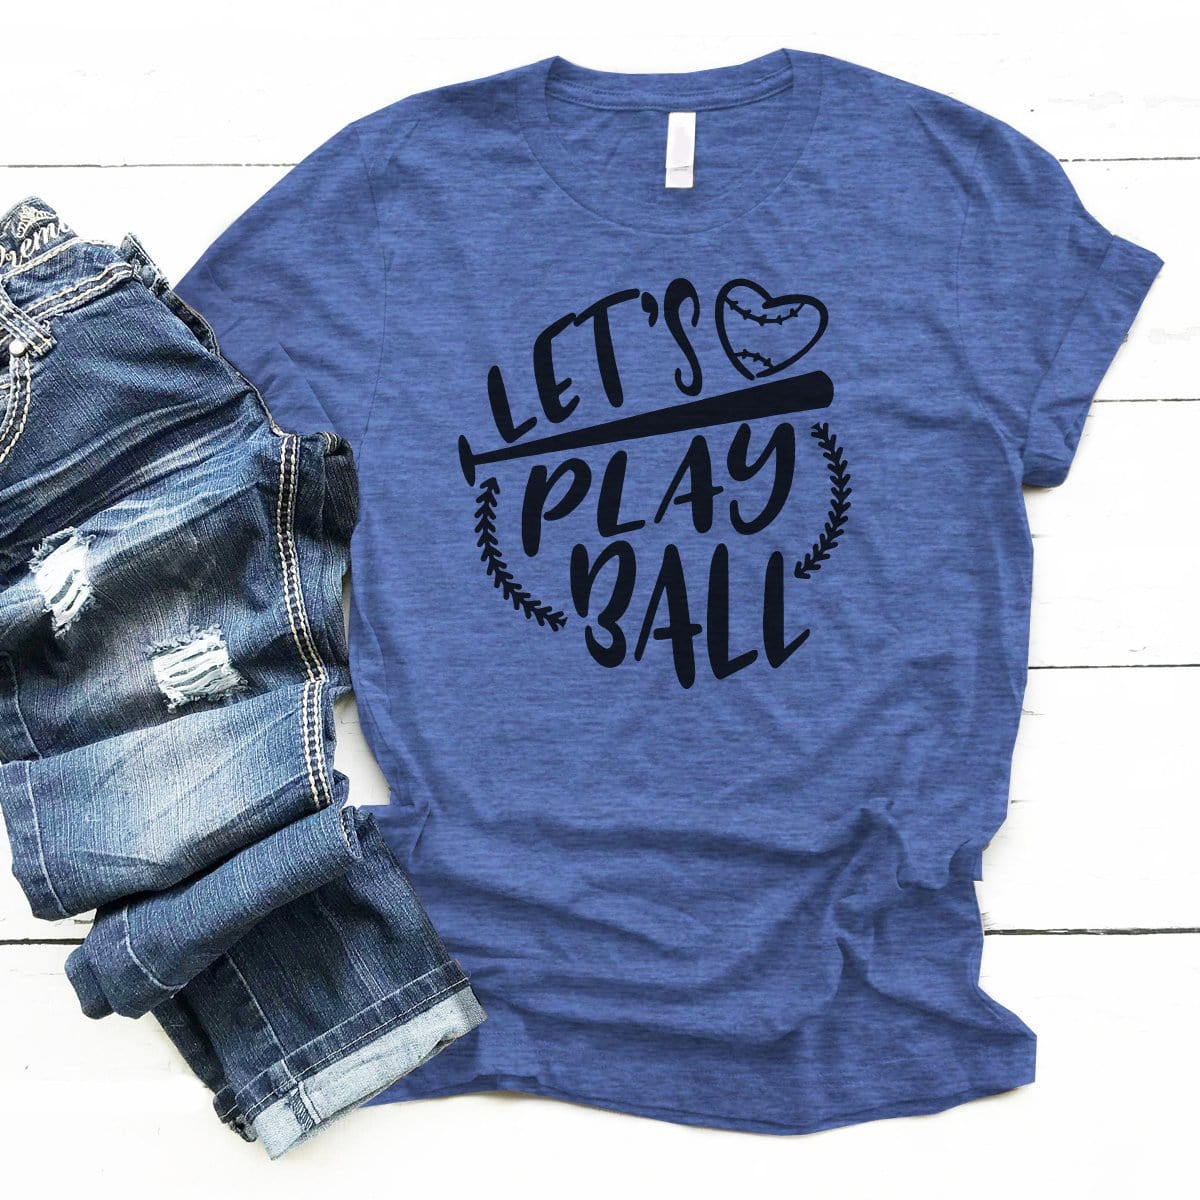 Let's Play Ball - Premium Unisex T-Shirt